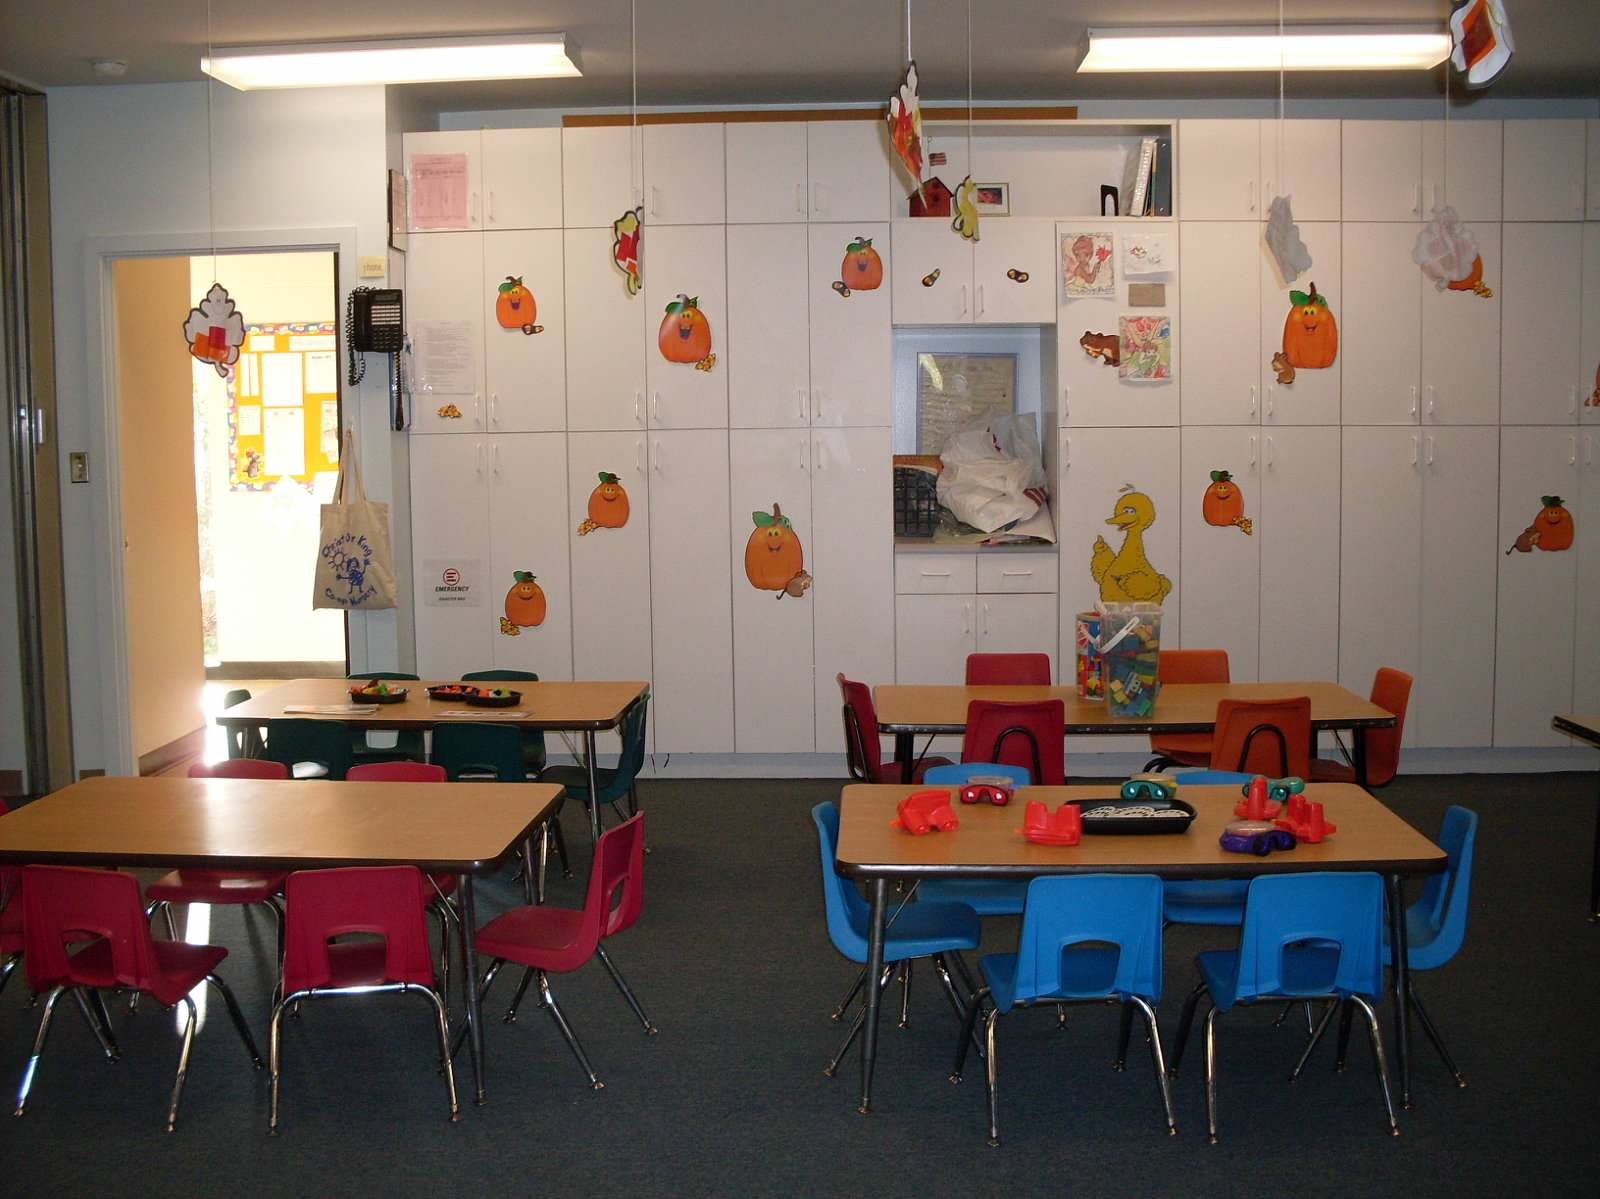 Classroom Instructional Space